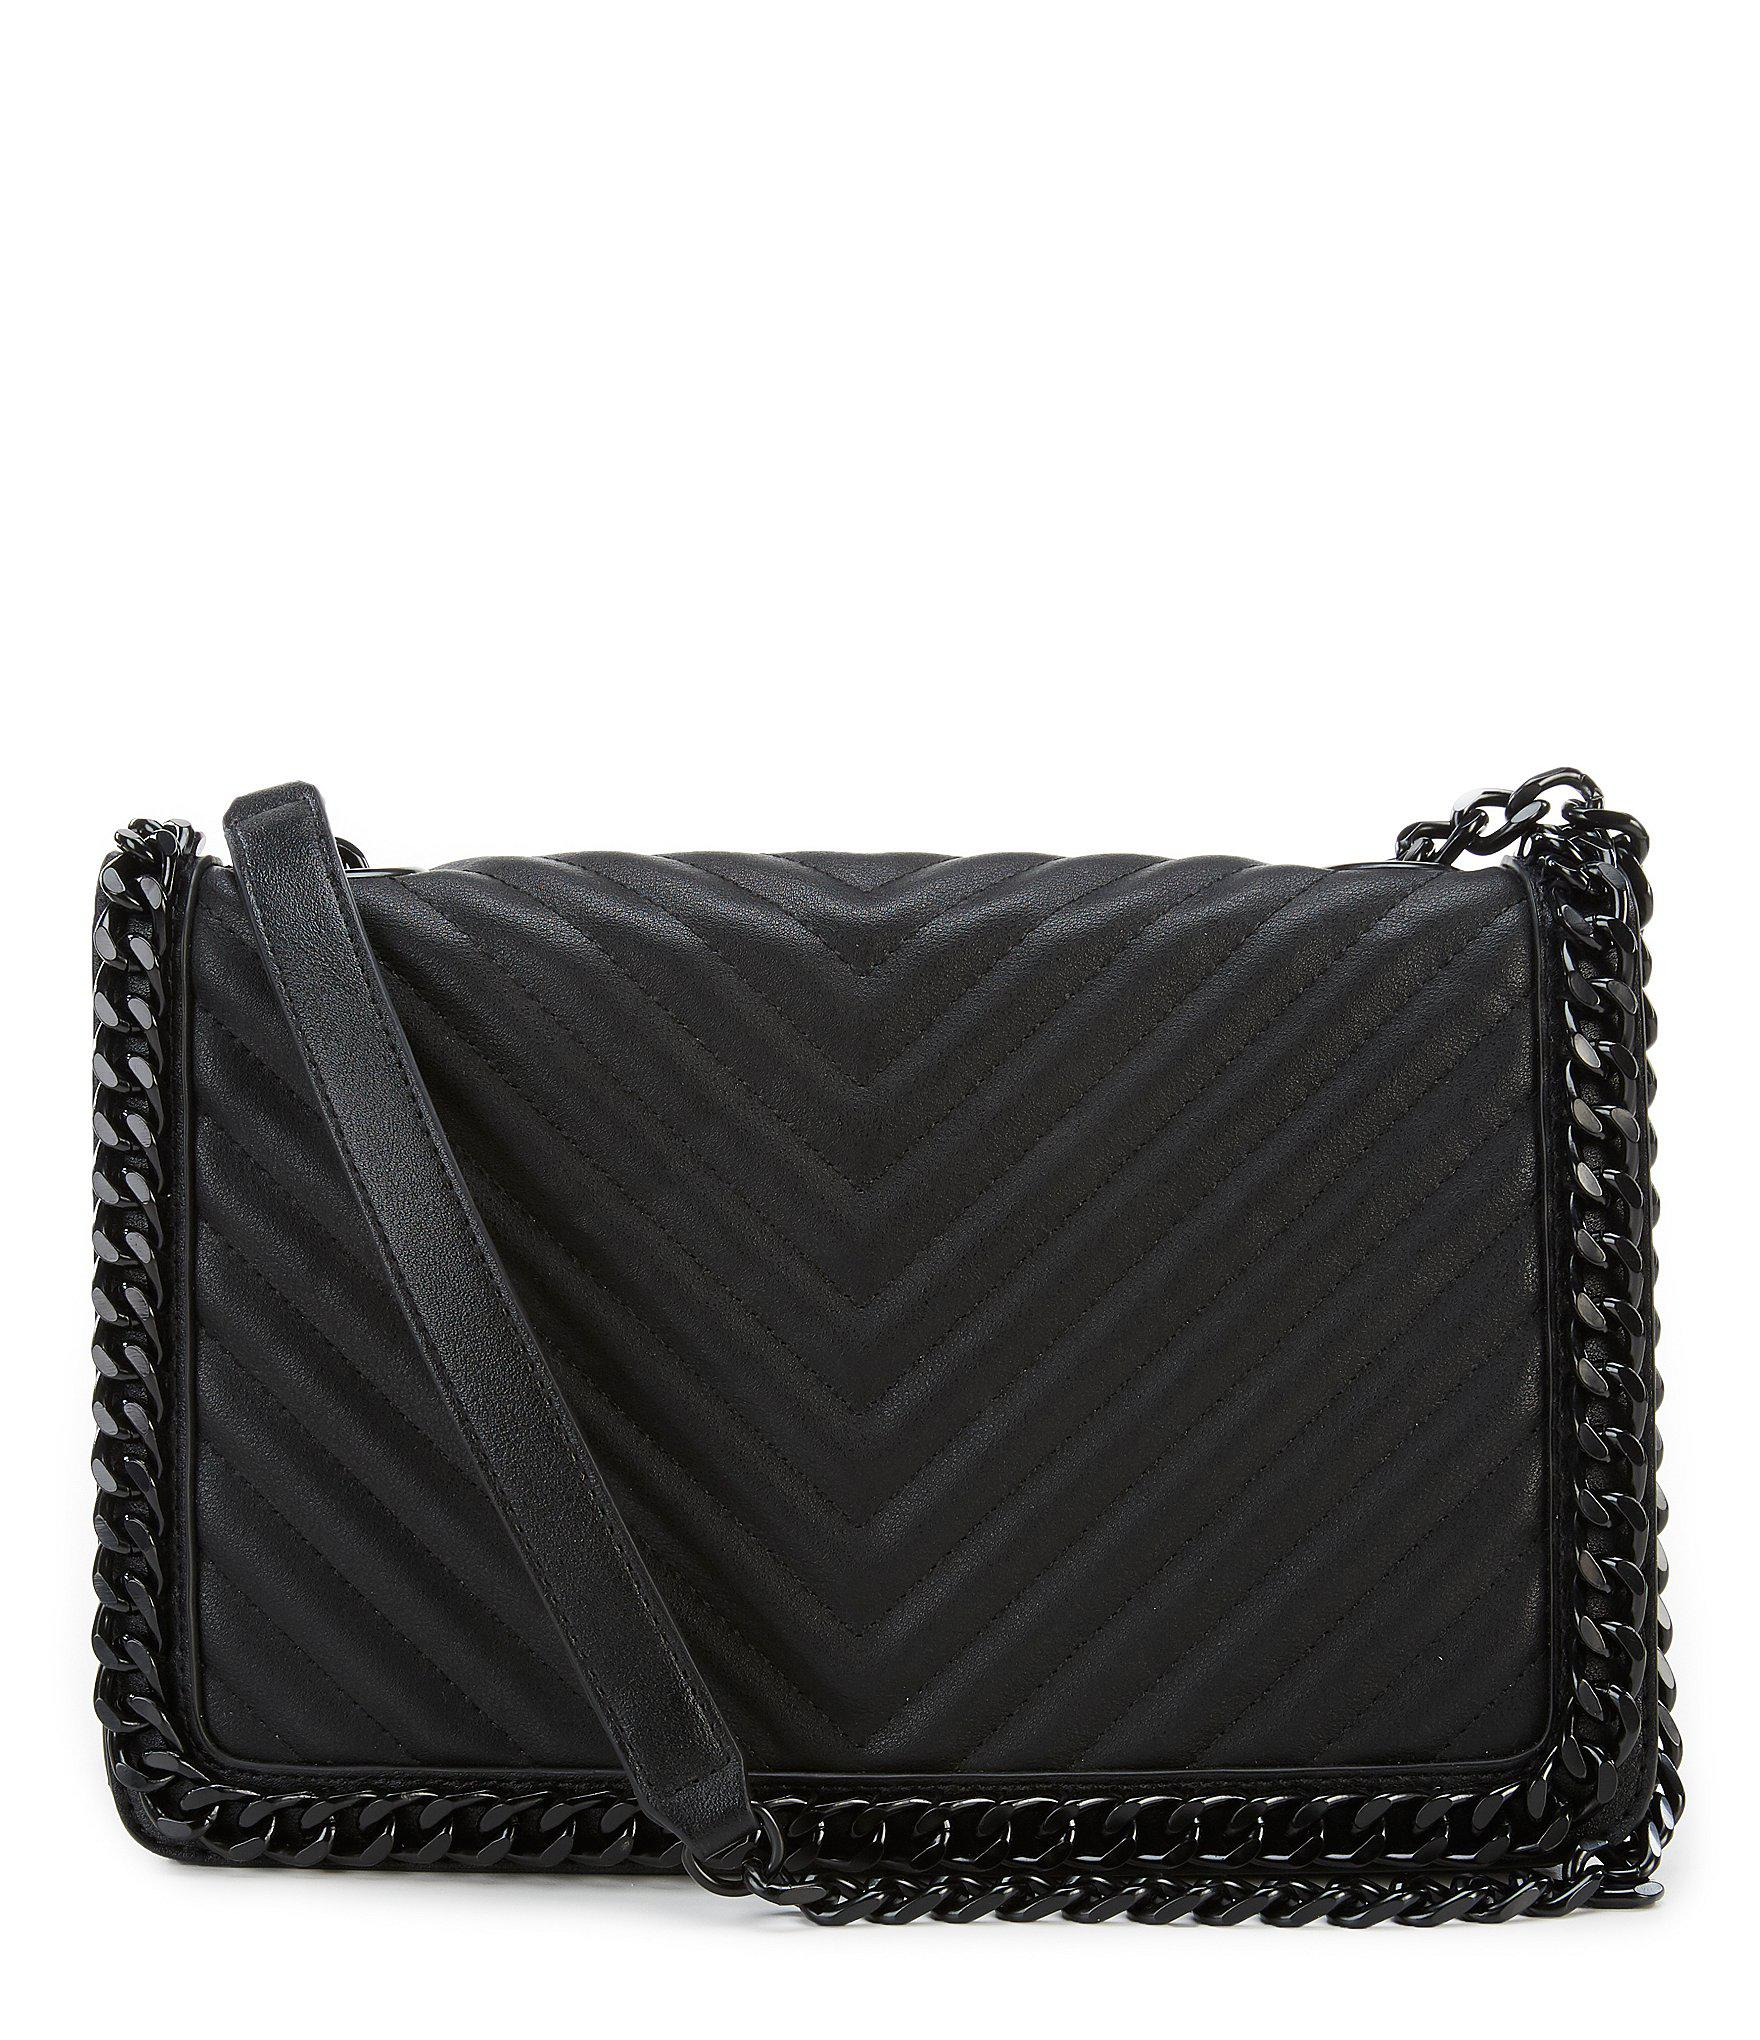 33076fd8ad7 ALDO Greenwald Quilted Shoulder Bag in Black - Lyst